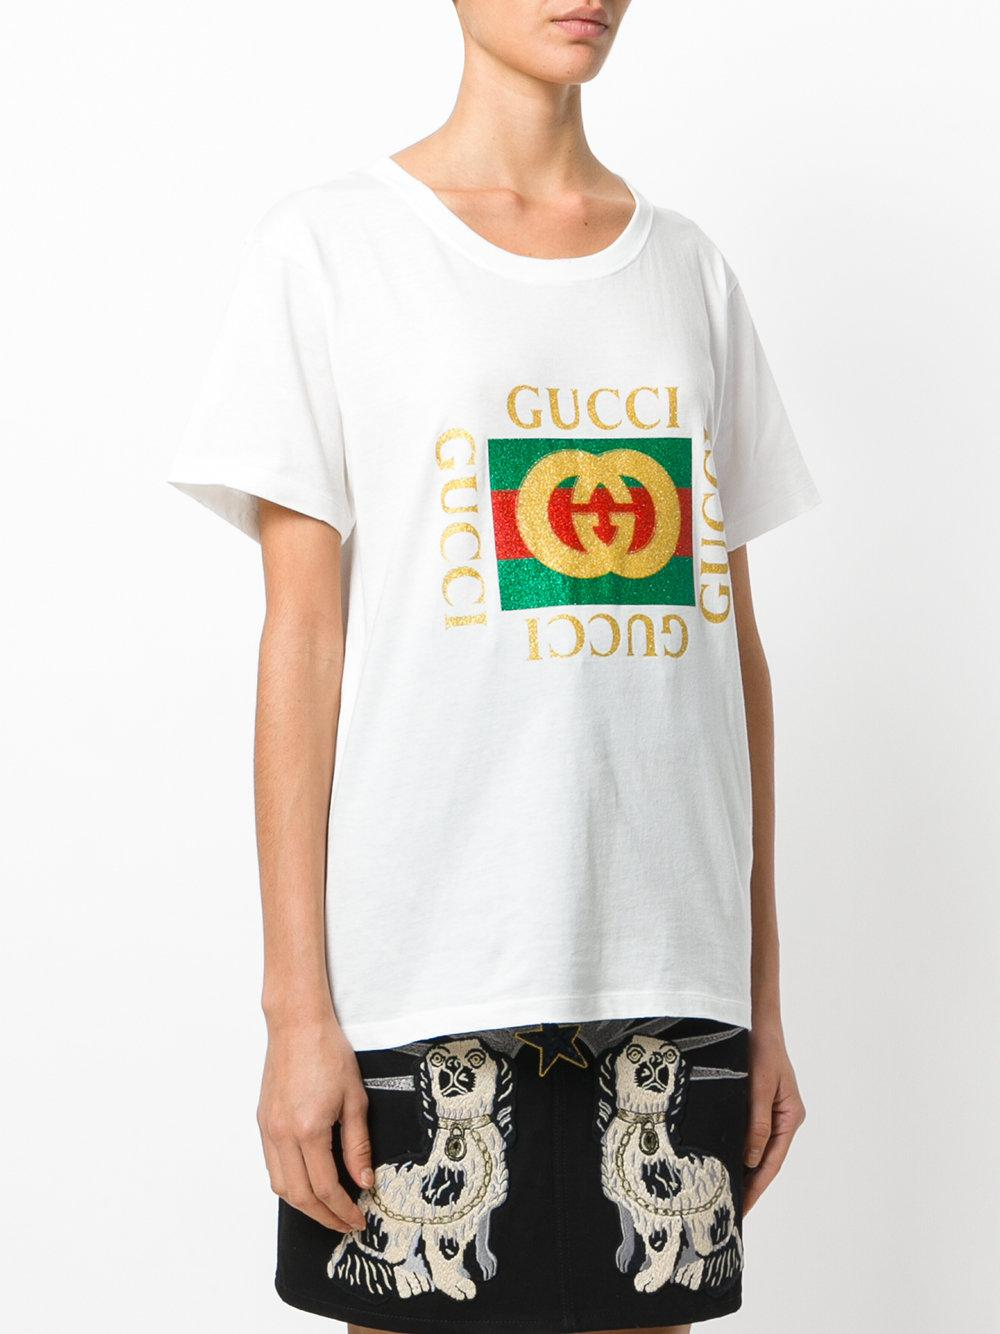 Gucci Logo Printed T-shirt in White - Lyst 150440eefd9c